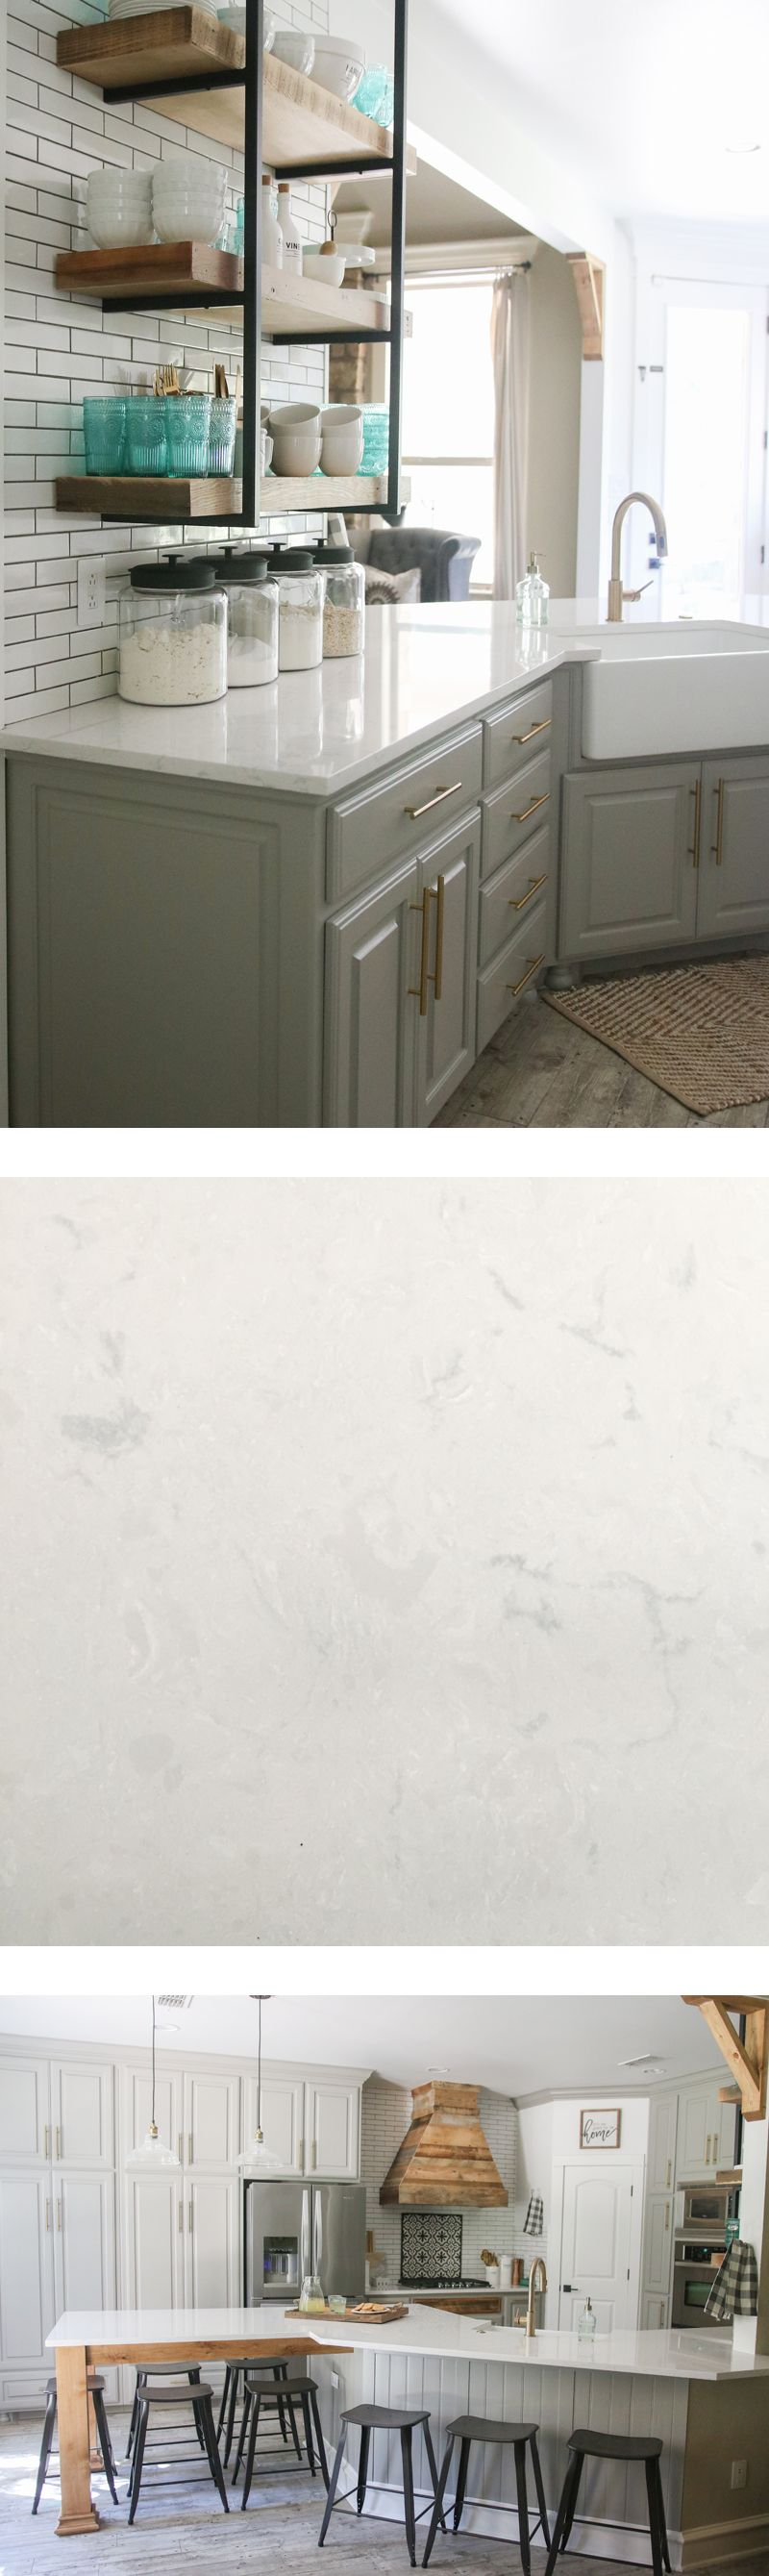 Cambria Quartz Countertops In Swanbridge... Looks Like Marble, But  Nonporous And Maintenance